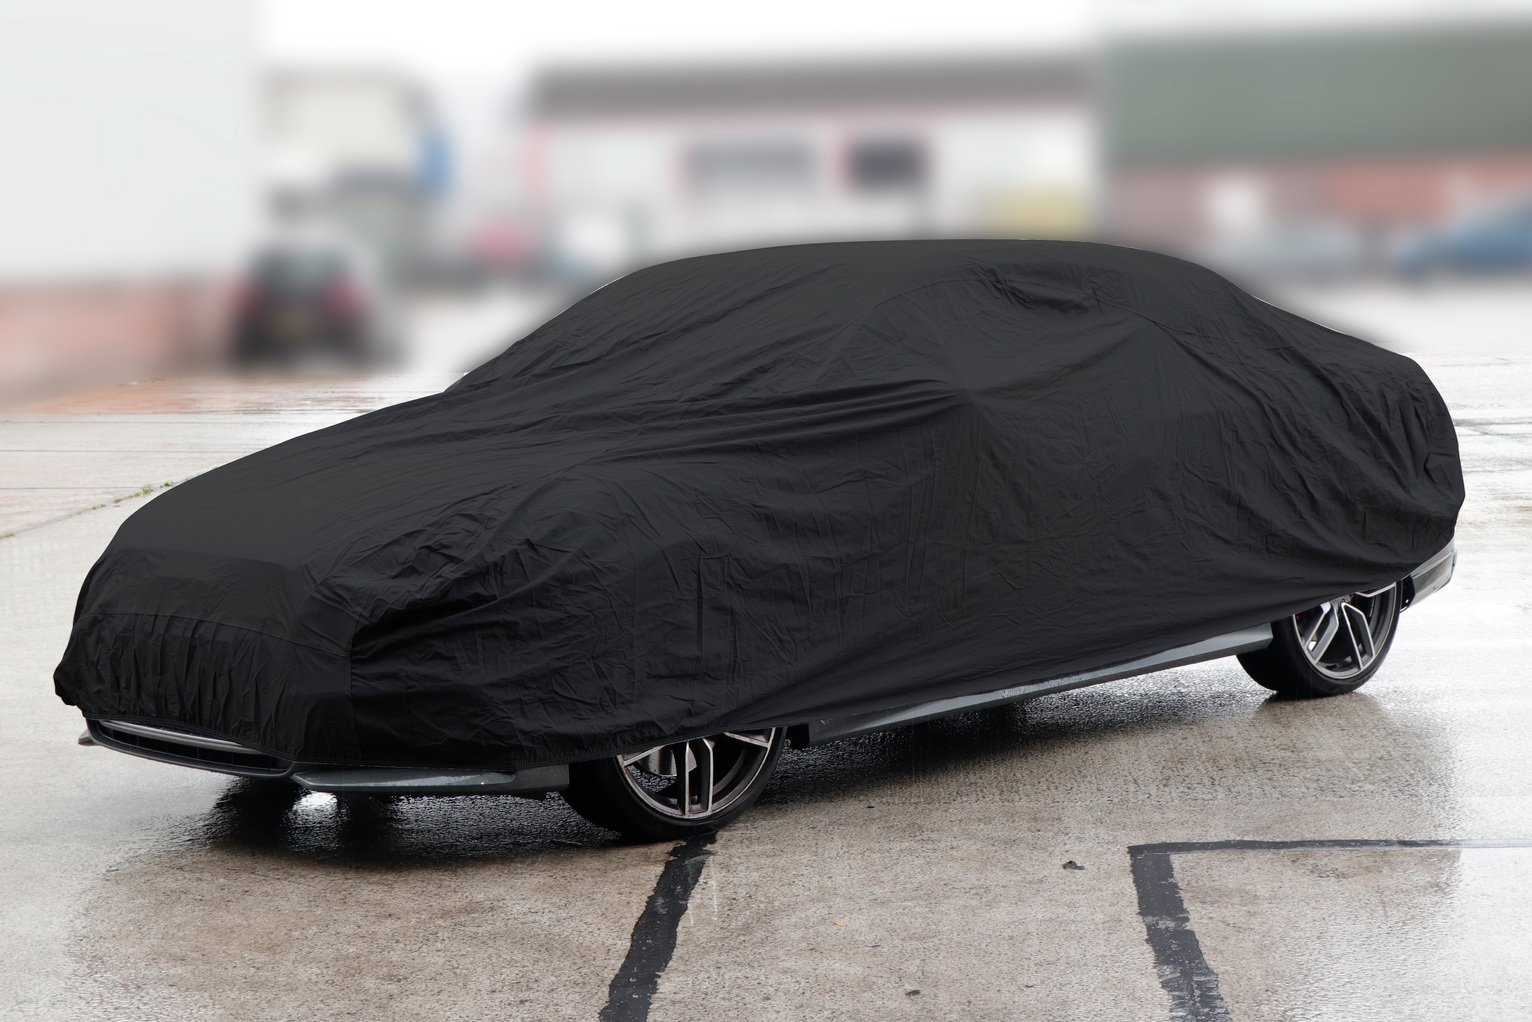 Streetwize Full Car Cover - Large